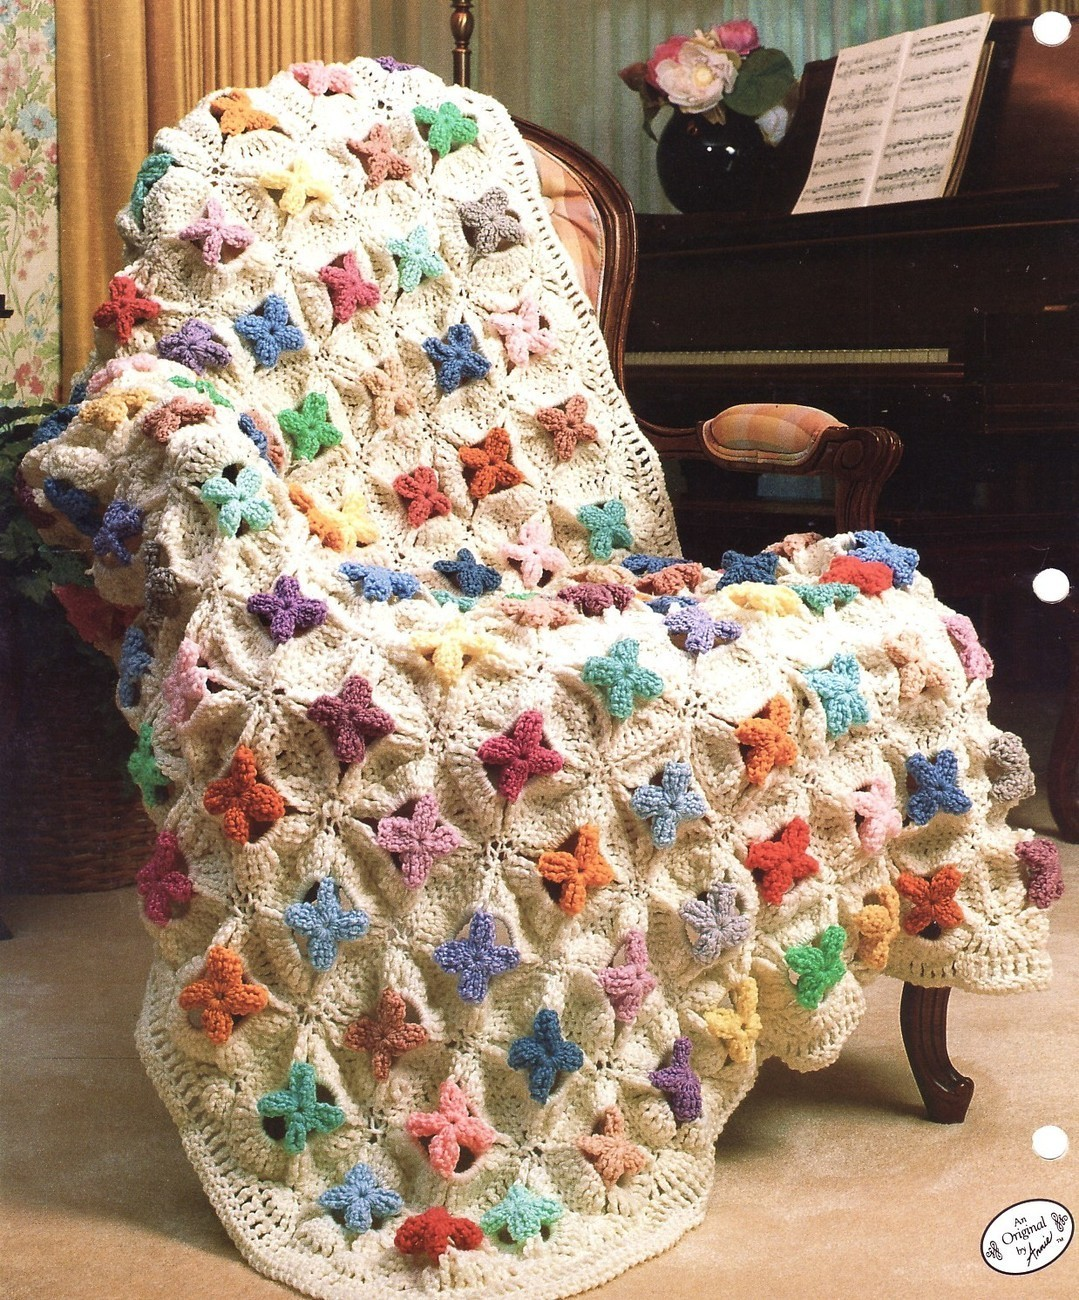 Free Crochet Patterns For Quilts : FREE CROCHET QUILT PATTERN - Crochet and Knitting Patterns